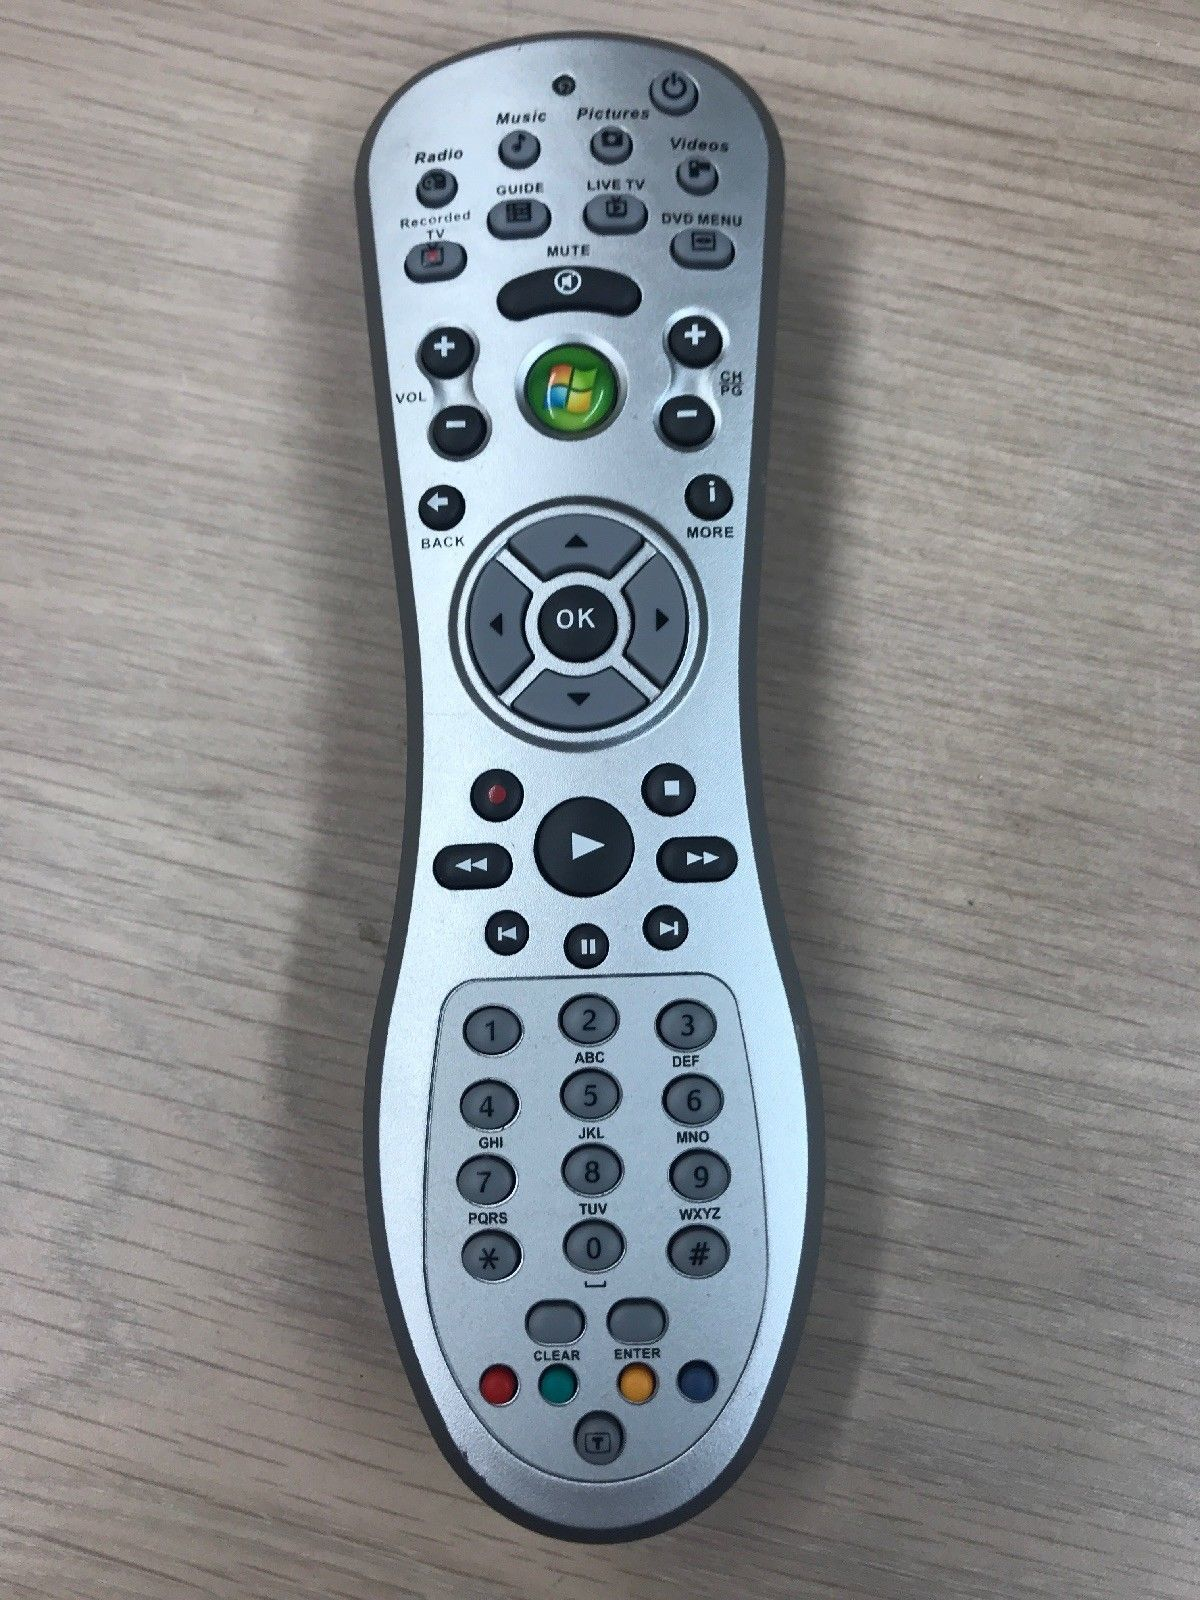 TSHA-IR01 Windows Media Center Remote Control - Tested & Cleaned            (J1)